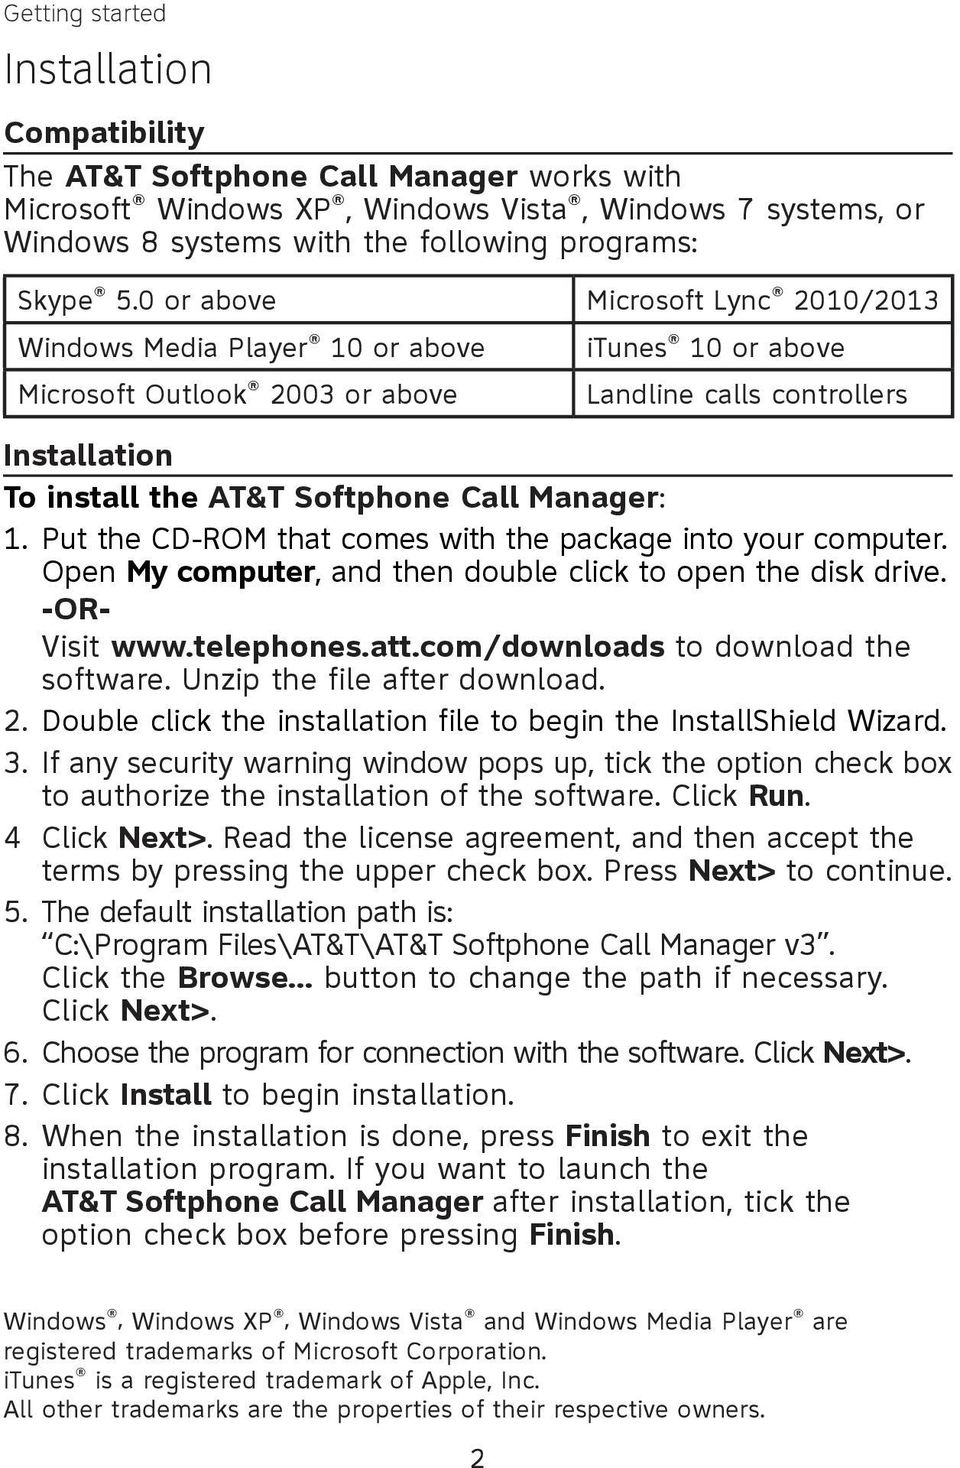 0 or above Microsoft Lync 2010/2013 Windows Media Player 10 or above Microsoft Outlook 2003 or above itunes 10 or above Landline calls controllers Installation To install the AT&T Softphone Call